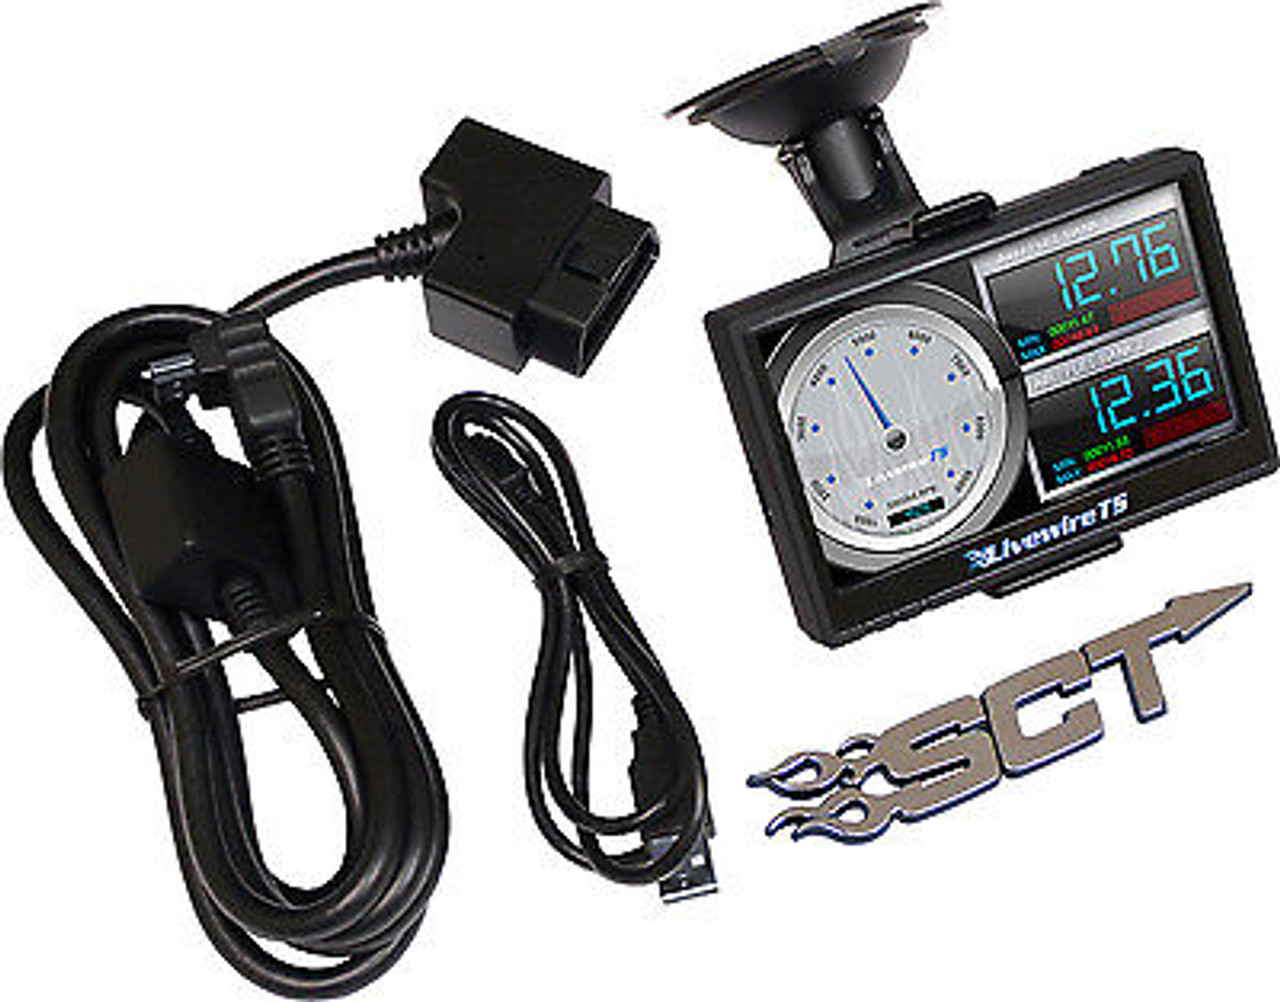 5015 9817 - SCT LIVEWIRE TS PERFORMANCE TUNER MONITOR PROGRAMMER FORD GAS DIESEL W PYROMETER